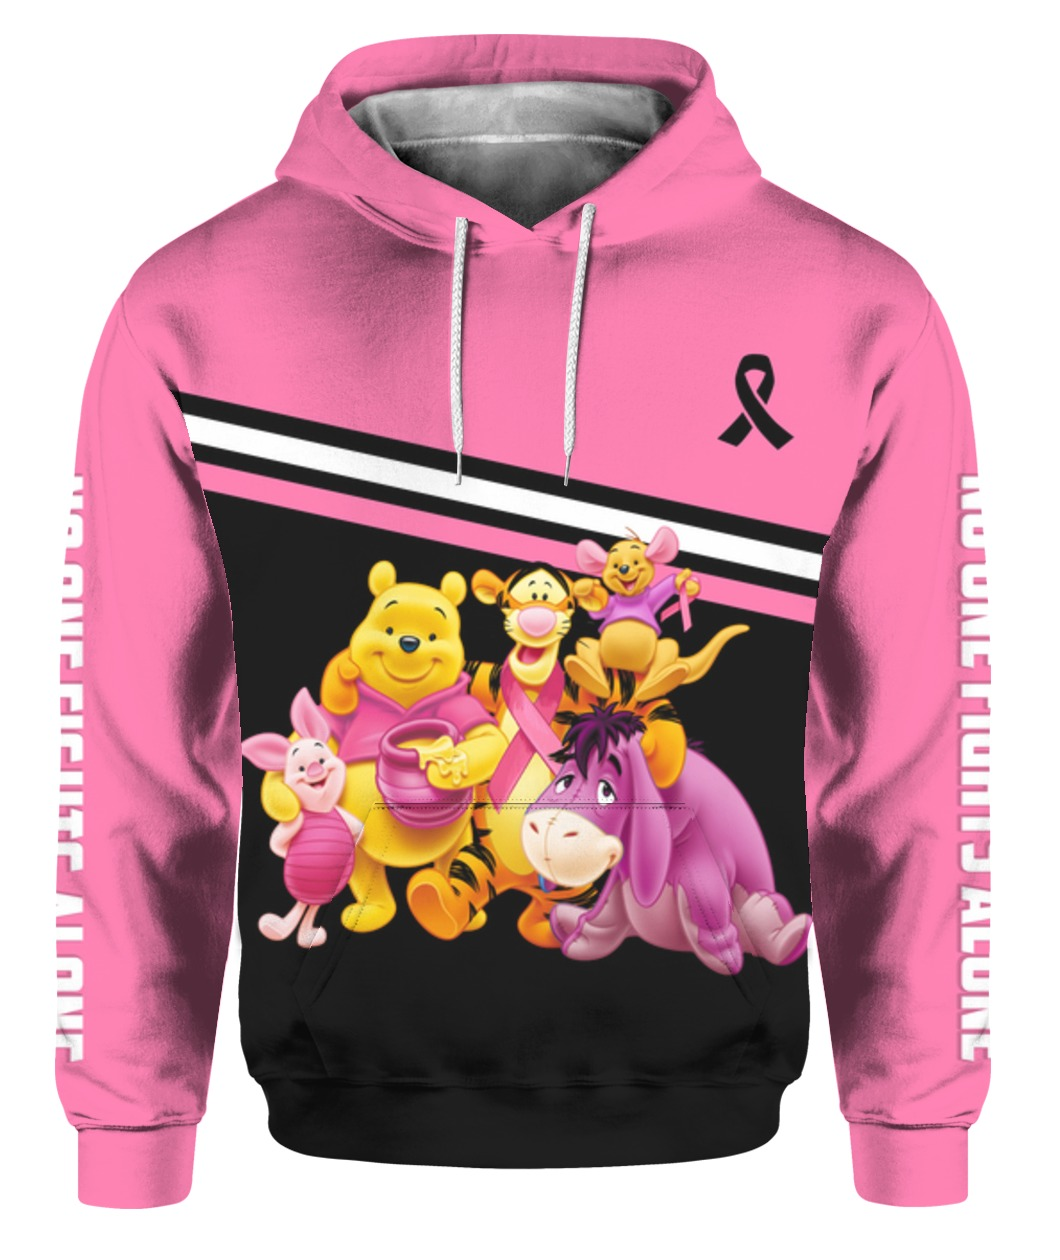 Winnie-the-pooh breast cancer awareness all over printed hoodie